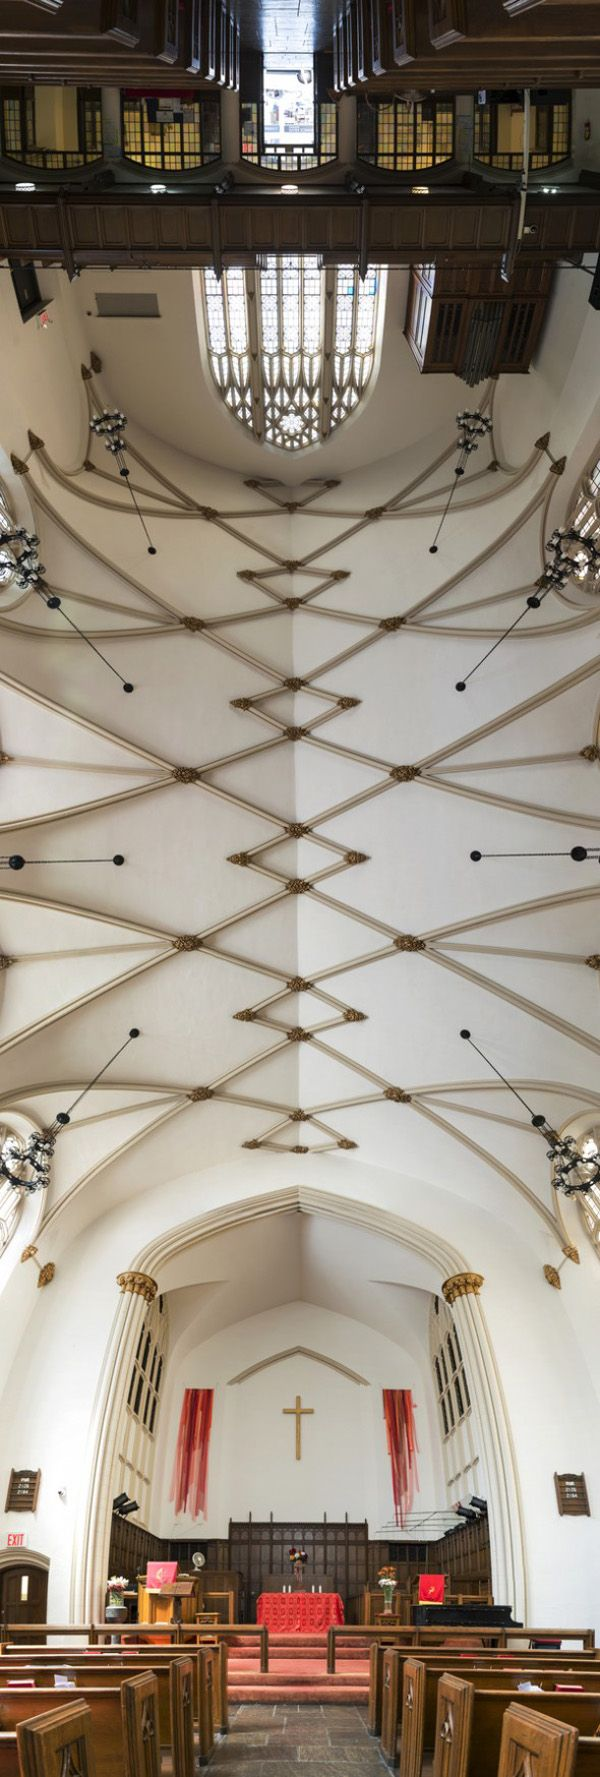 Heavenly Panoramas: The Church Ceilings of New York